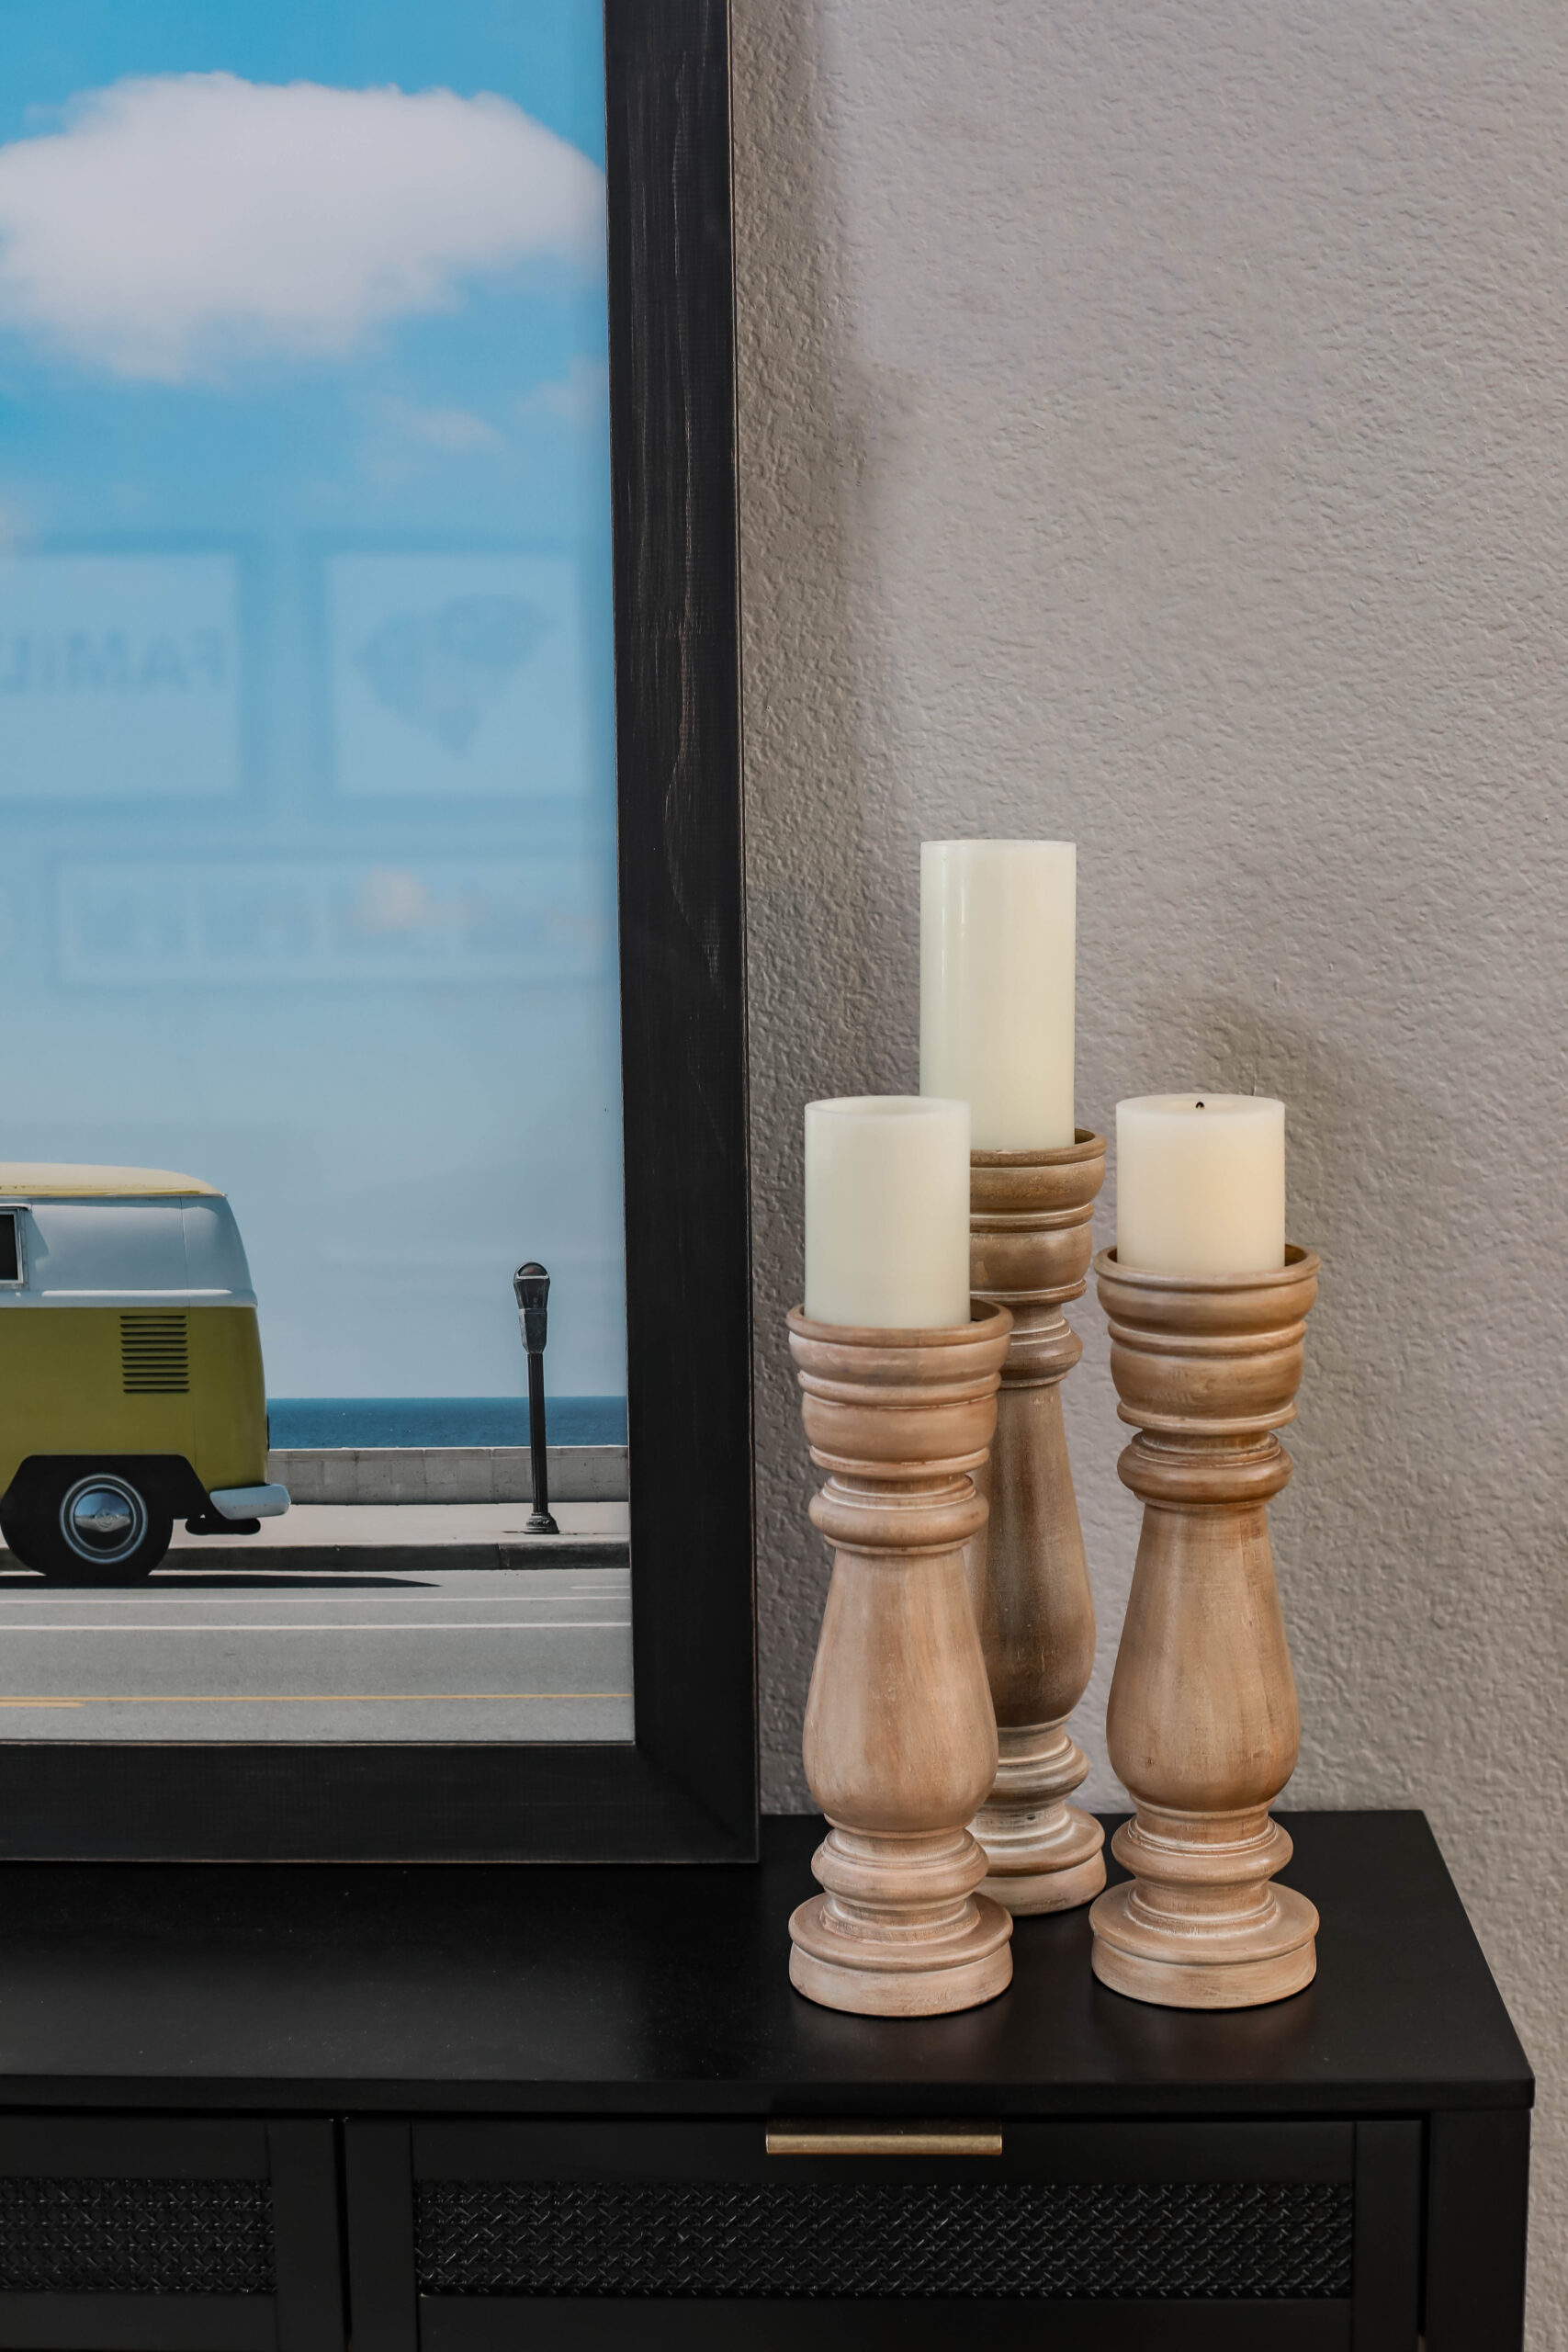 On the hunt for console table decor ideas? This is our beach themed foyer table decor!